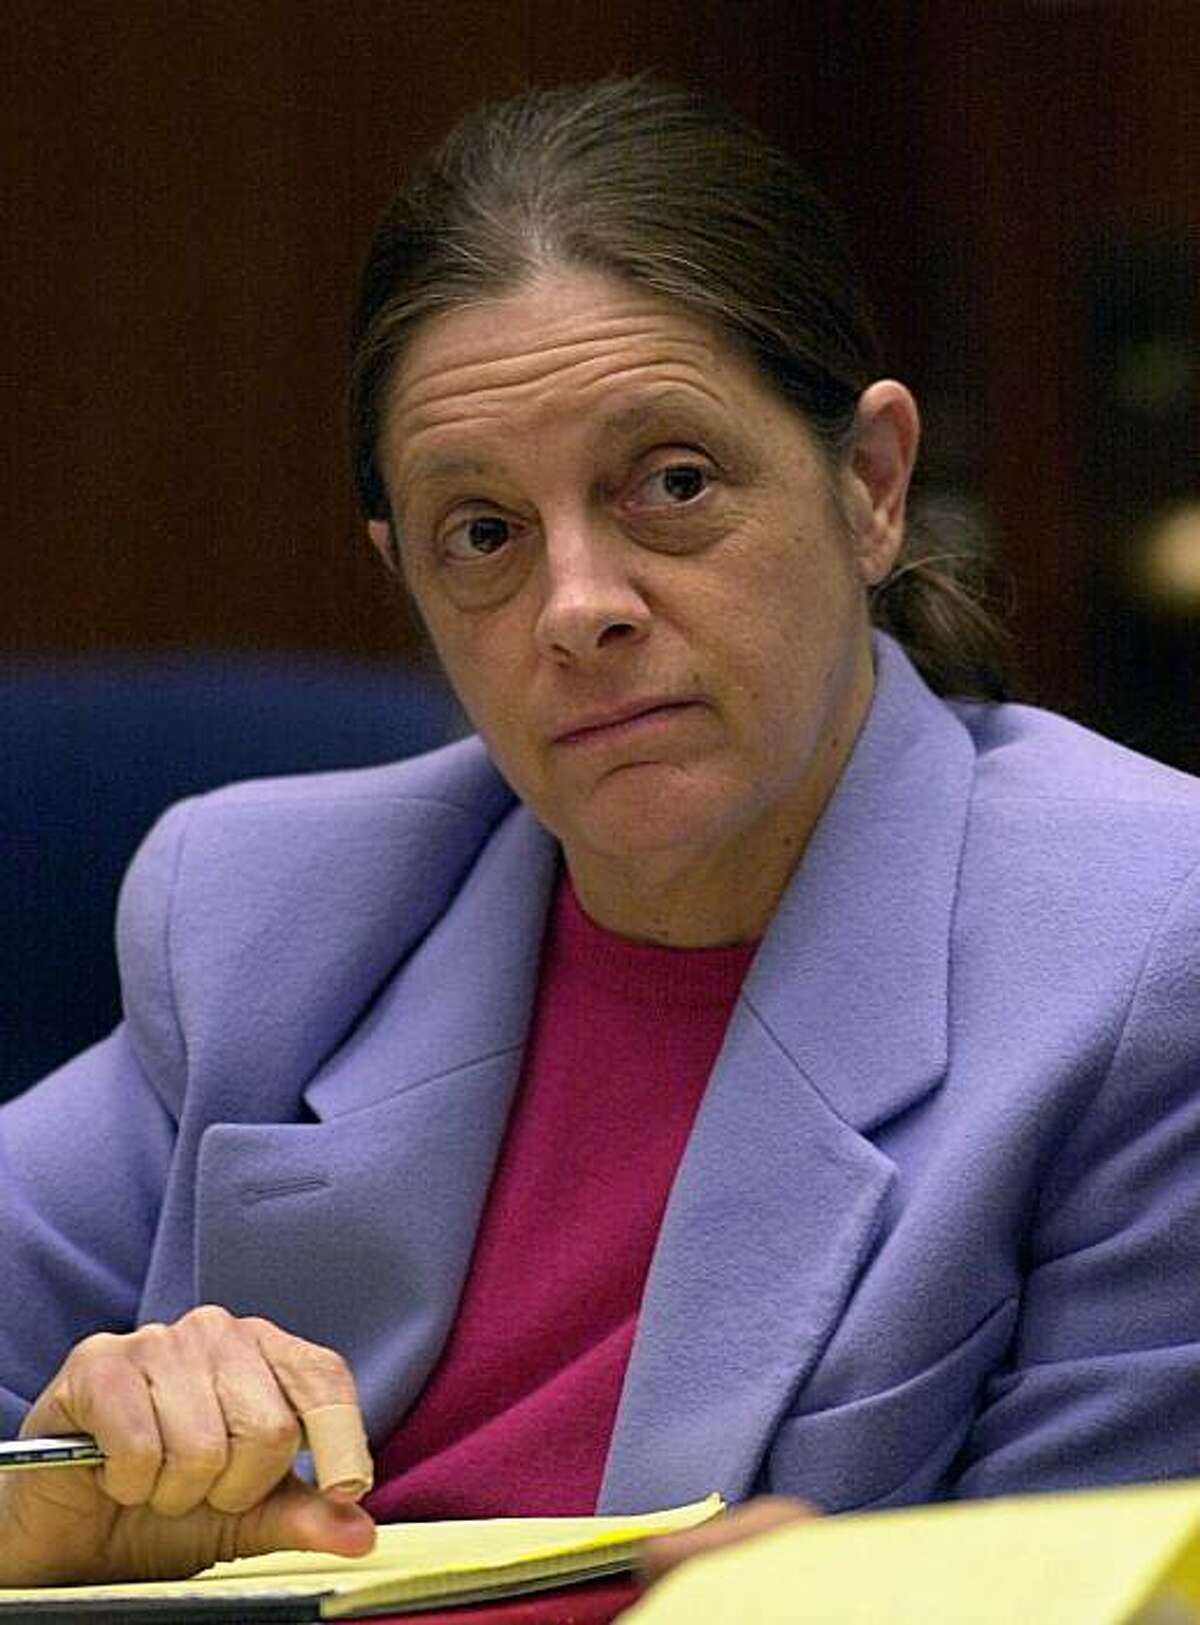 Marjorie Knoller listens to closing arguments in the San Francisco dog mauling trial on March 18, 2002, at the Los Angeles County Courthouse in Los Angeles. Knoller whose dogs viciously attacked and killed her neighbor in the hallway of their apartment building seven years ago was sentenced on Monday, Sept 22, 2008, to 15 years to life in prison. Her previous conviction had been reduced, but the Californian Supreme Court overturned the reduction. Last month, Superior Court Judge Charlotte Woolard reinstated the murder conviction, for which Knoller was sentenced Monday. (AP Photo/Nick Ut, Pool)